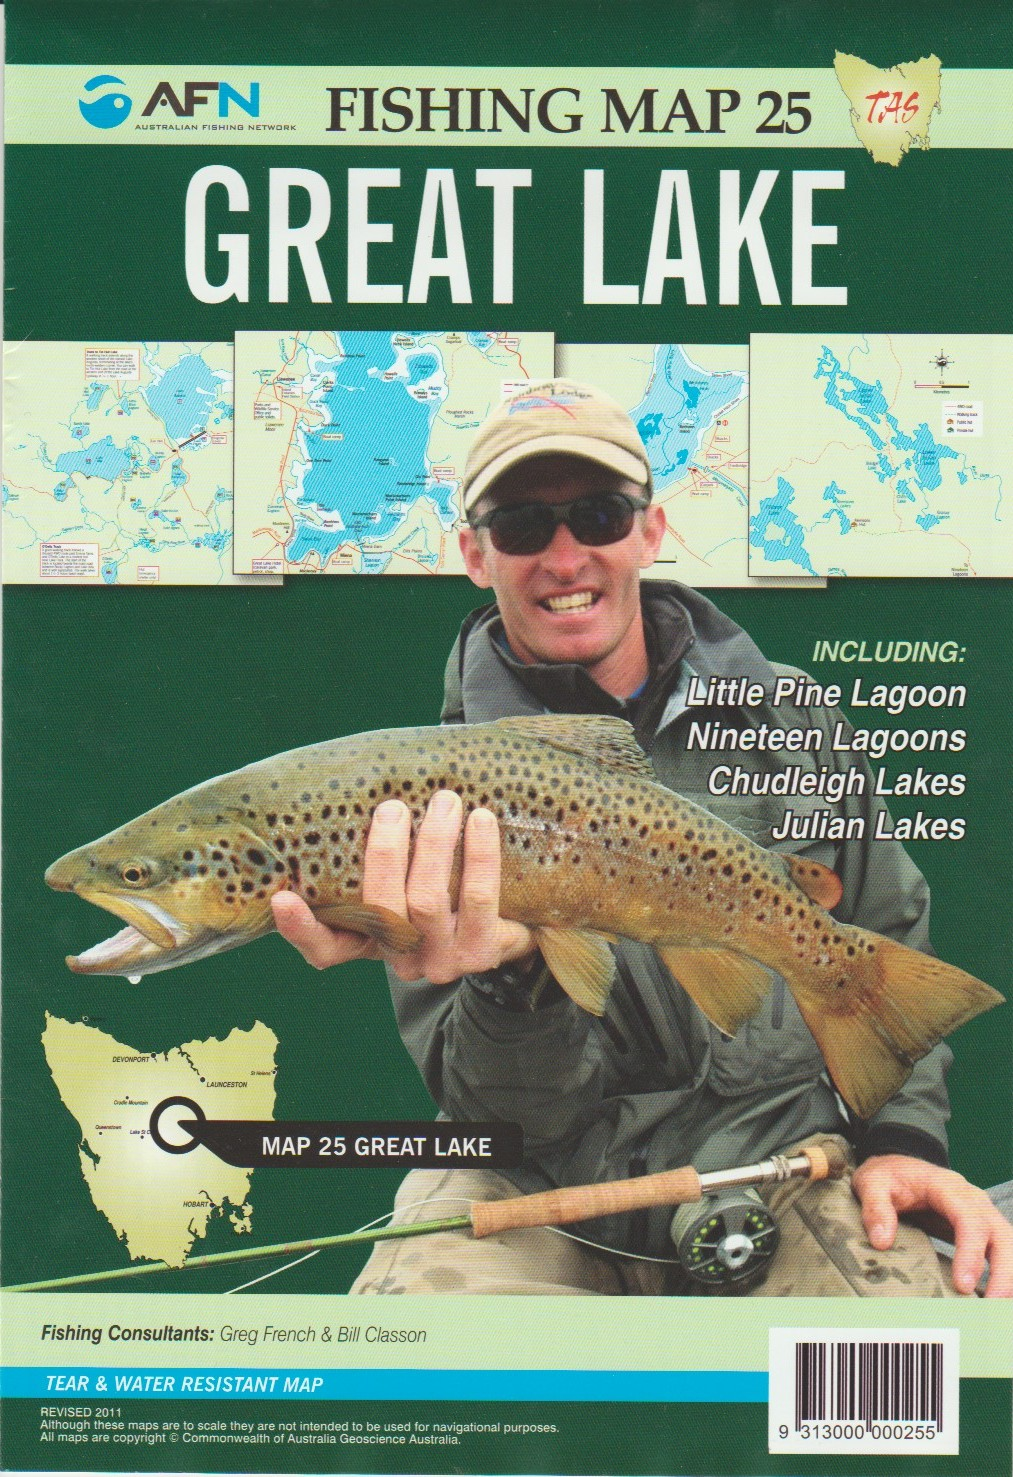 Fishing Map # 25 Great Lake including Nineteen Lagoons, Little Pine Lagoon